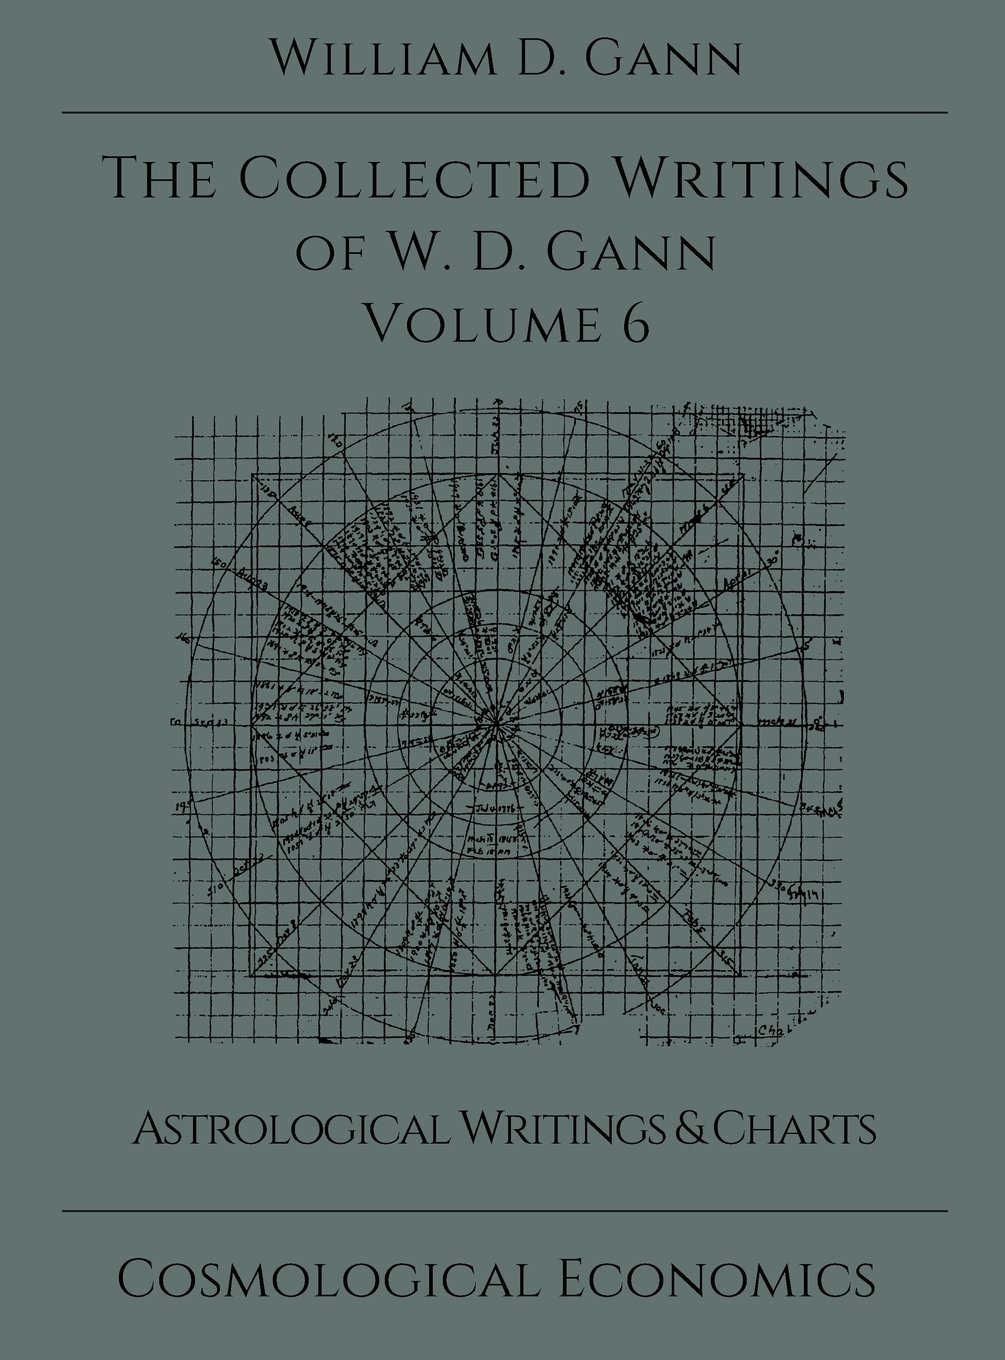 Collected Writings of W.D. Gann - Volume 6 by William D Gann